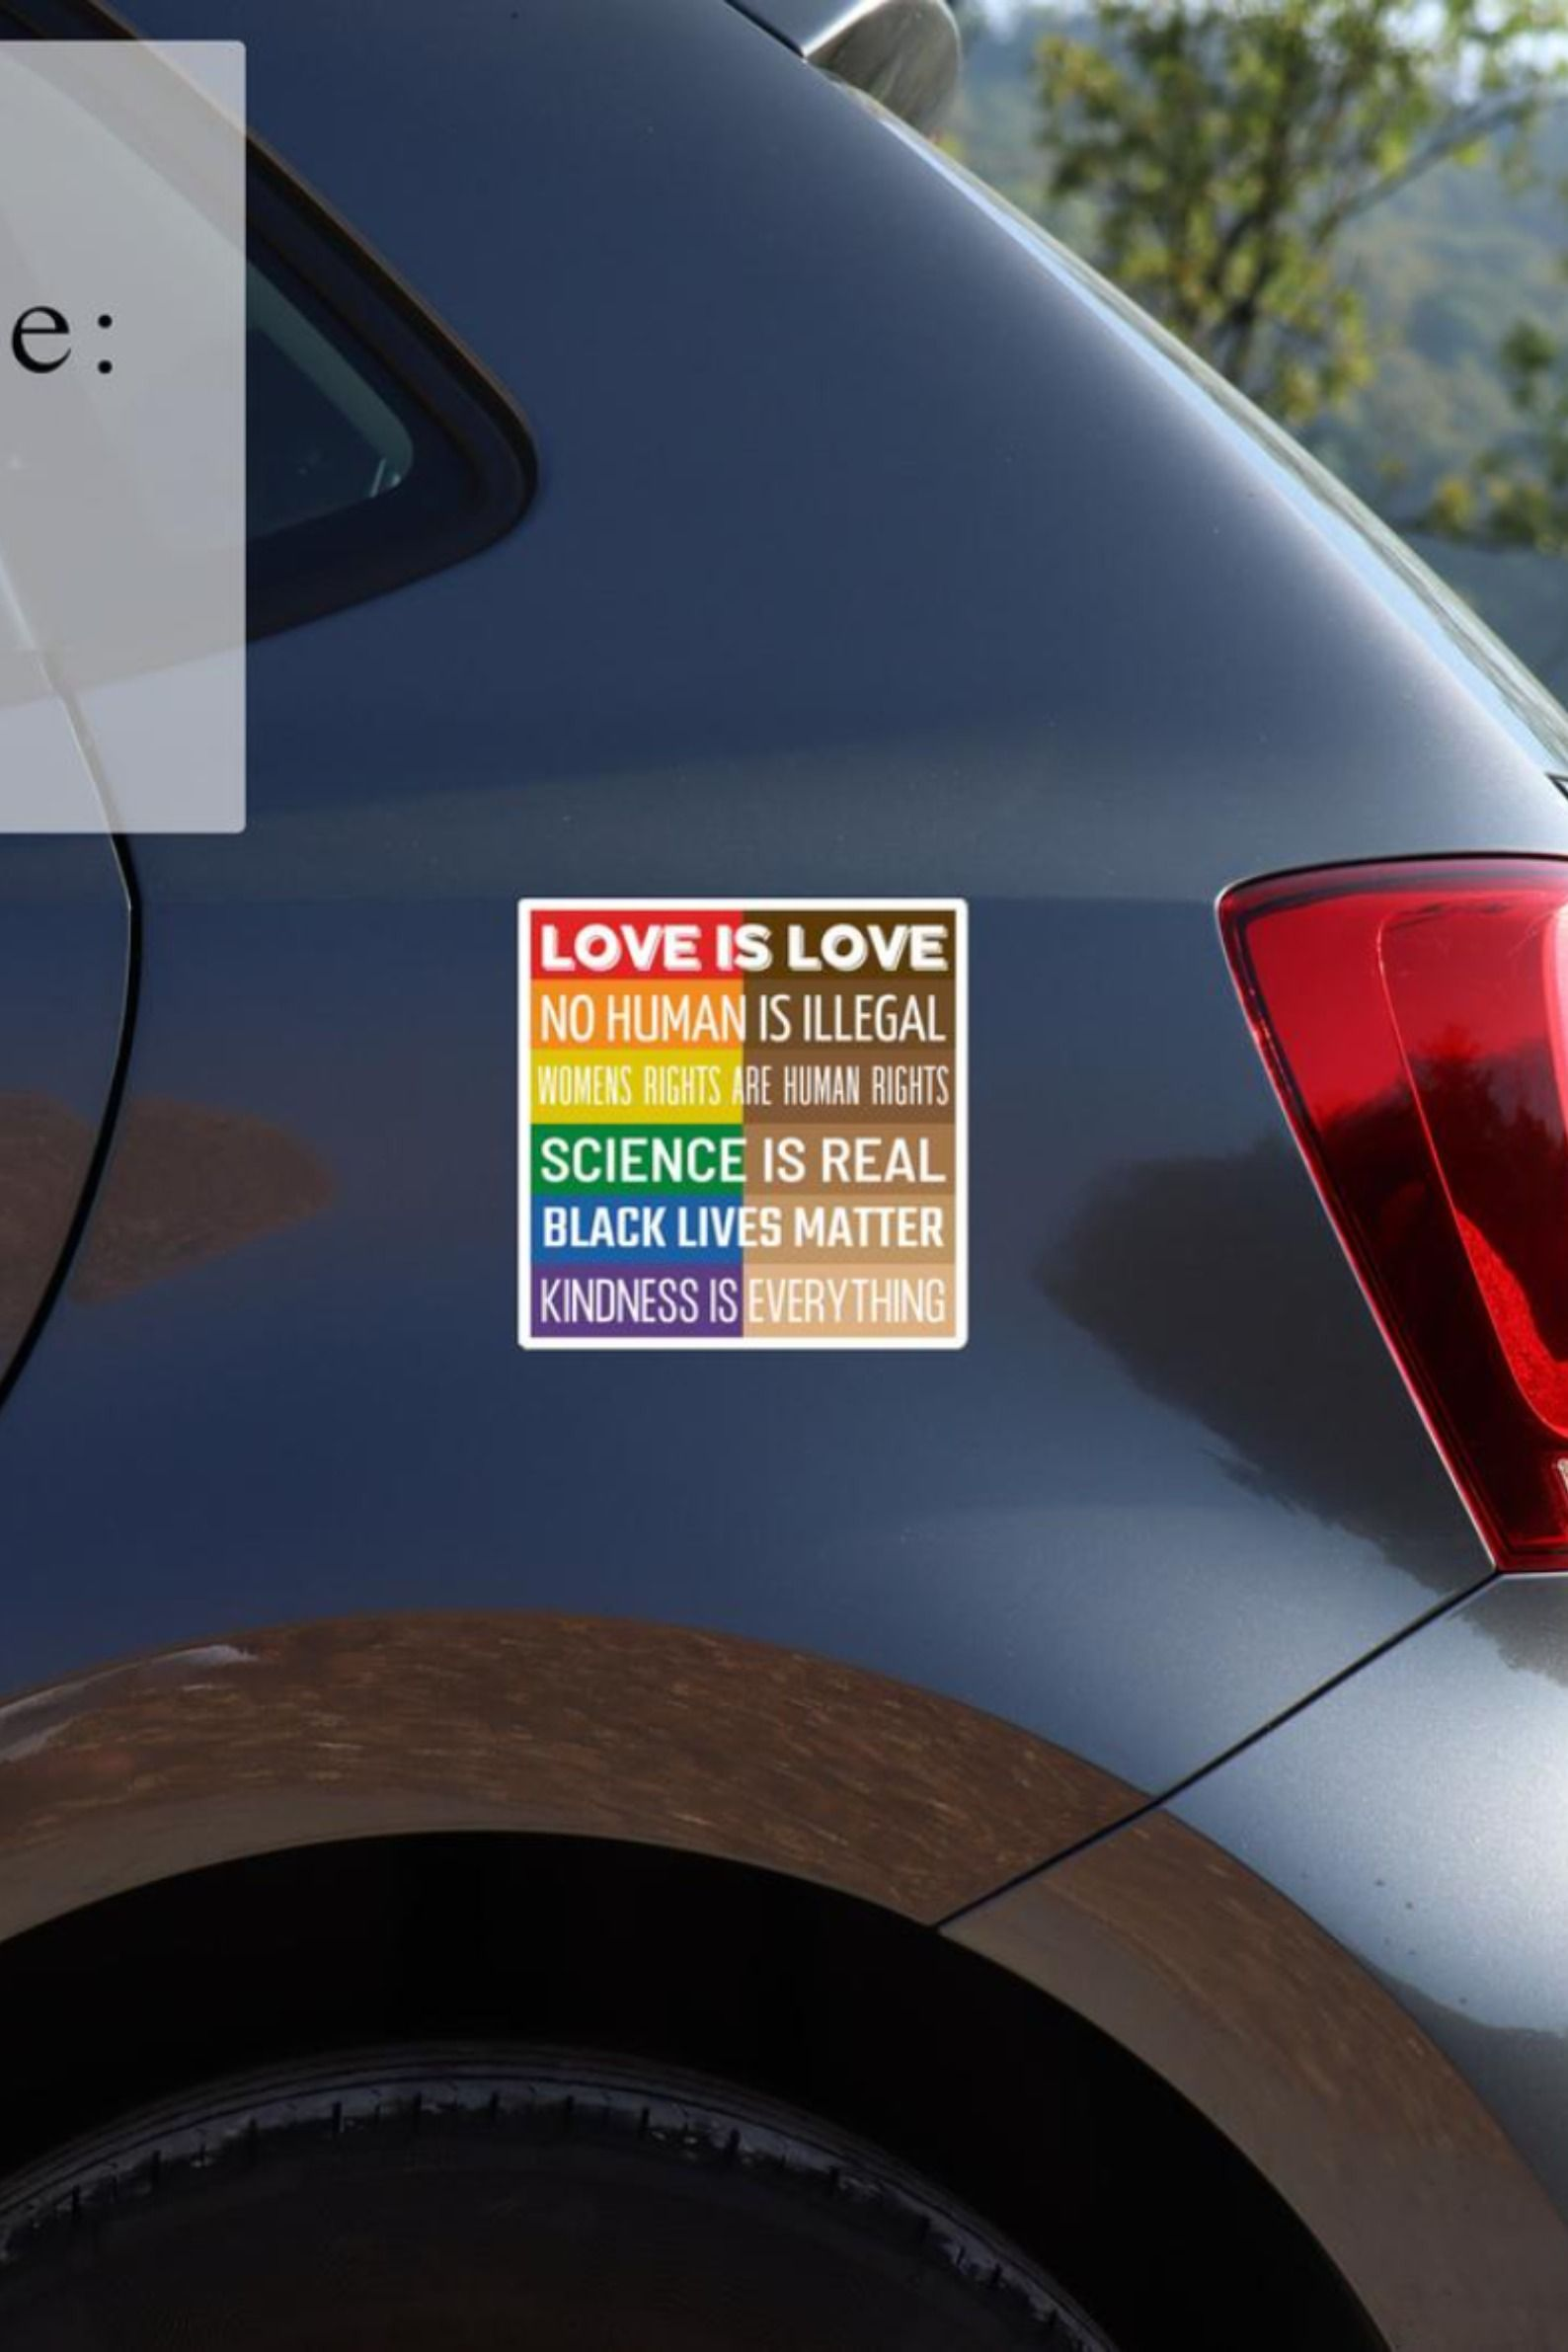 Magnetic Bumper Sticker Science Is Real Black Lives Matter Etsy Bumper Stickers Car Magnets Bumper Stickers Magnetic Bumper Stickers